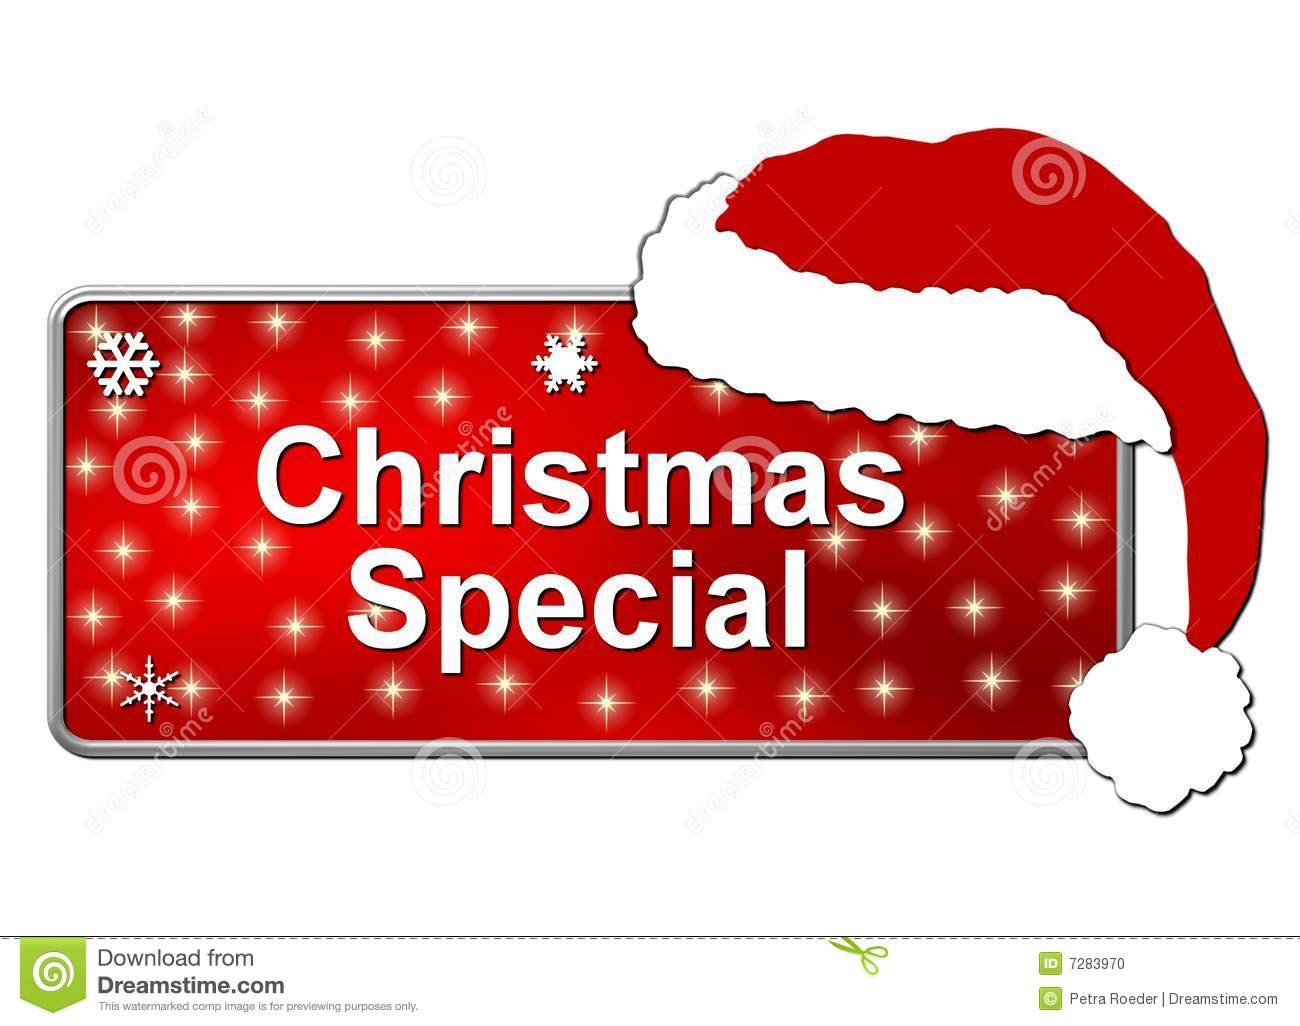 Christmas Special.Christmas Special Button Stock Illustration Illustration Of